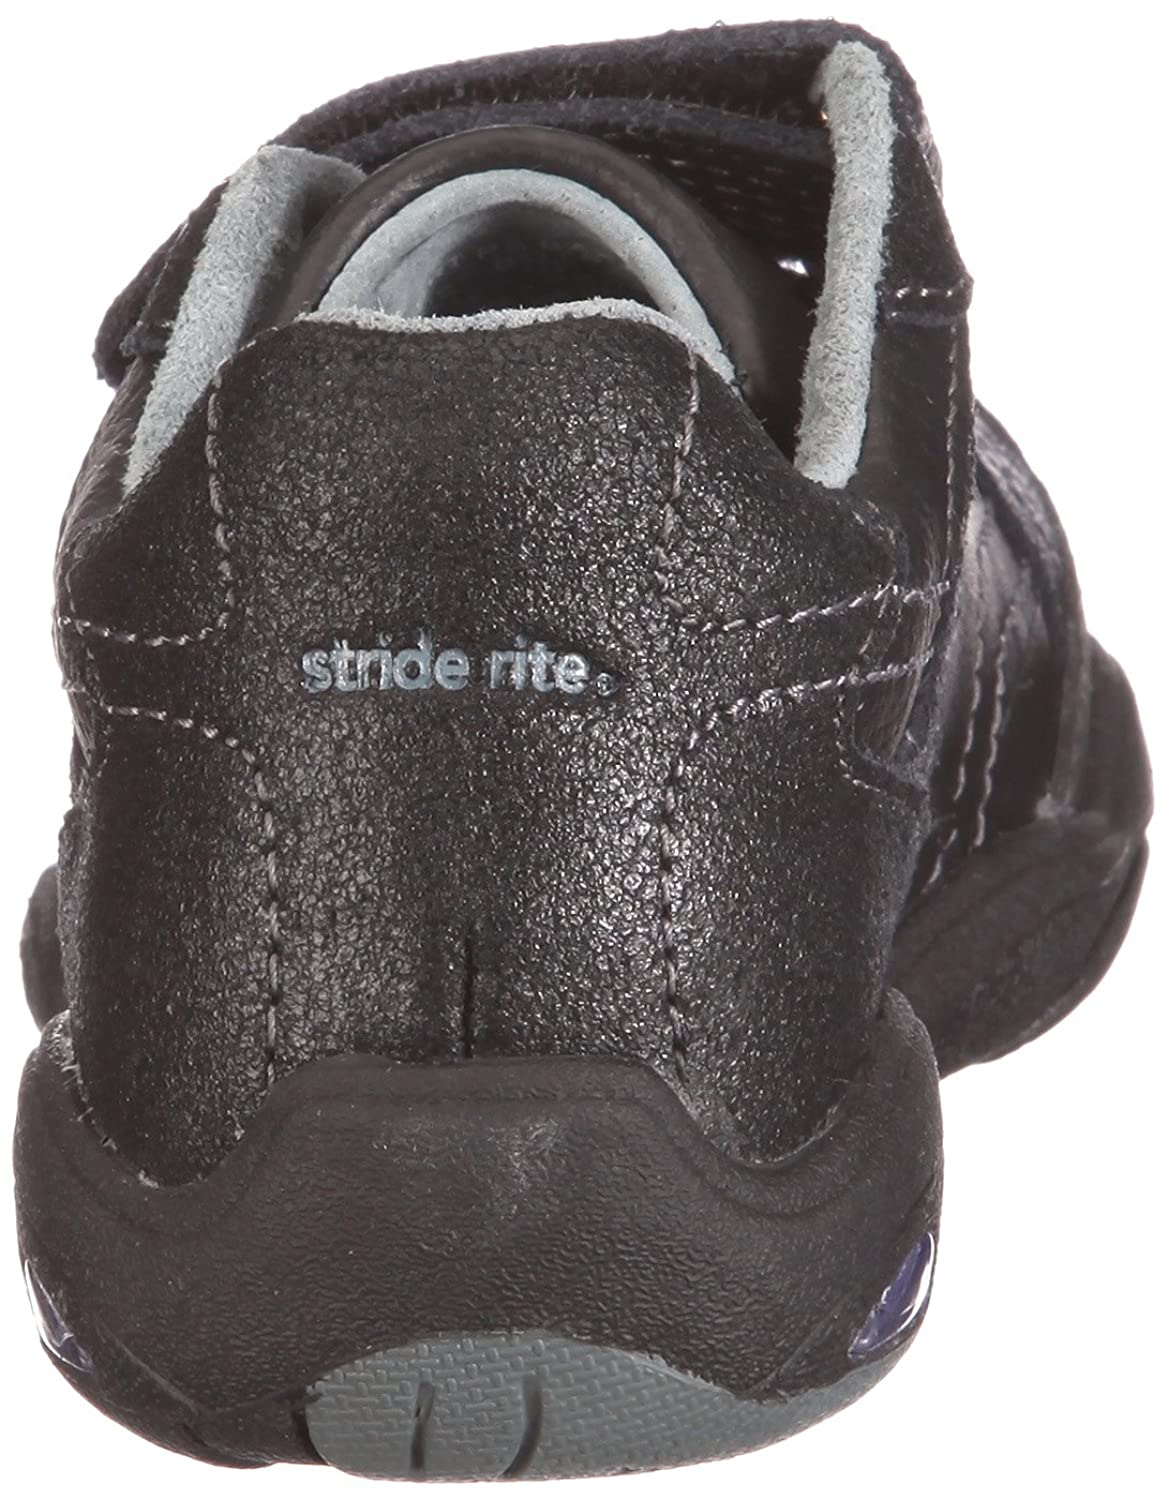 Amazon stride rite srt ps baxter shoe toddlerlittle kid amazon stride rite srt ps baxter shoe toddlerlittle kid sneakers nvjuhfo Images